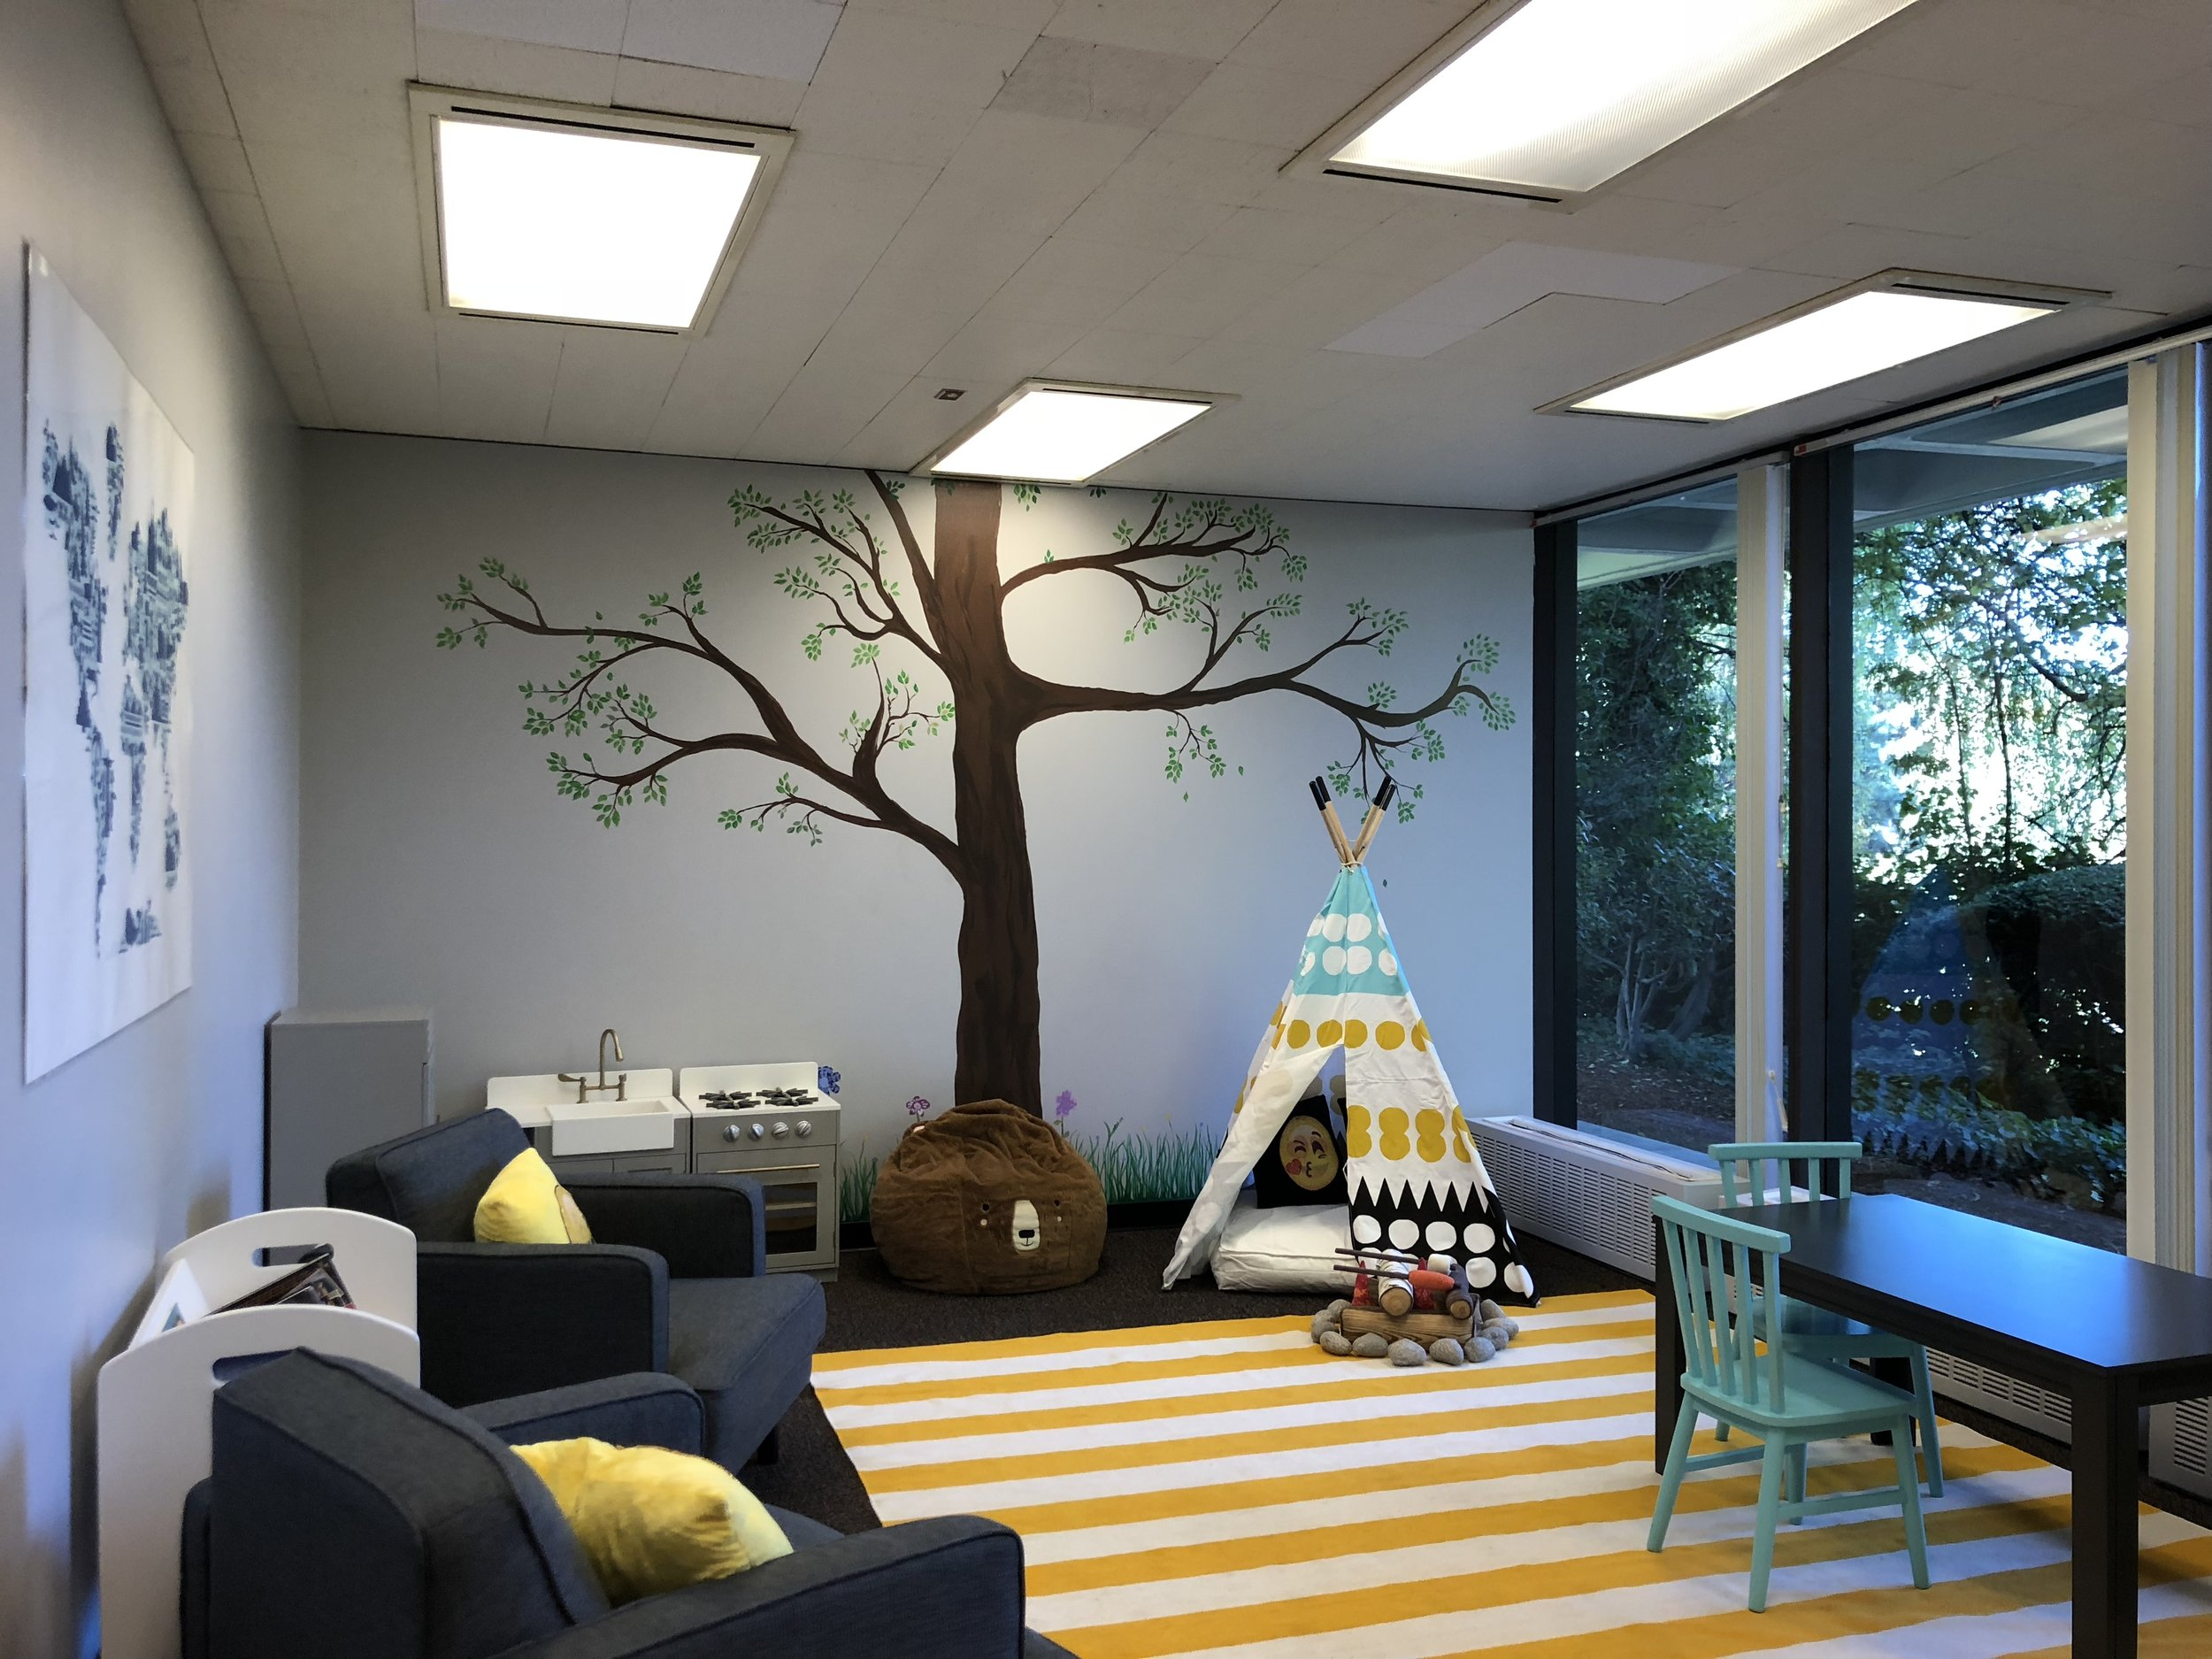 The Imagination Room | Done by Mark Charlesworth Real Estate Team